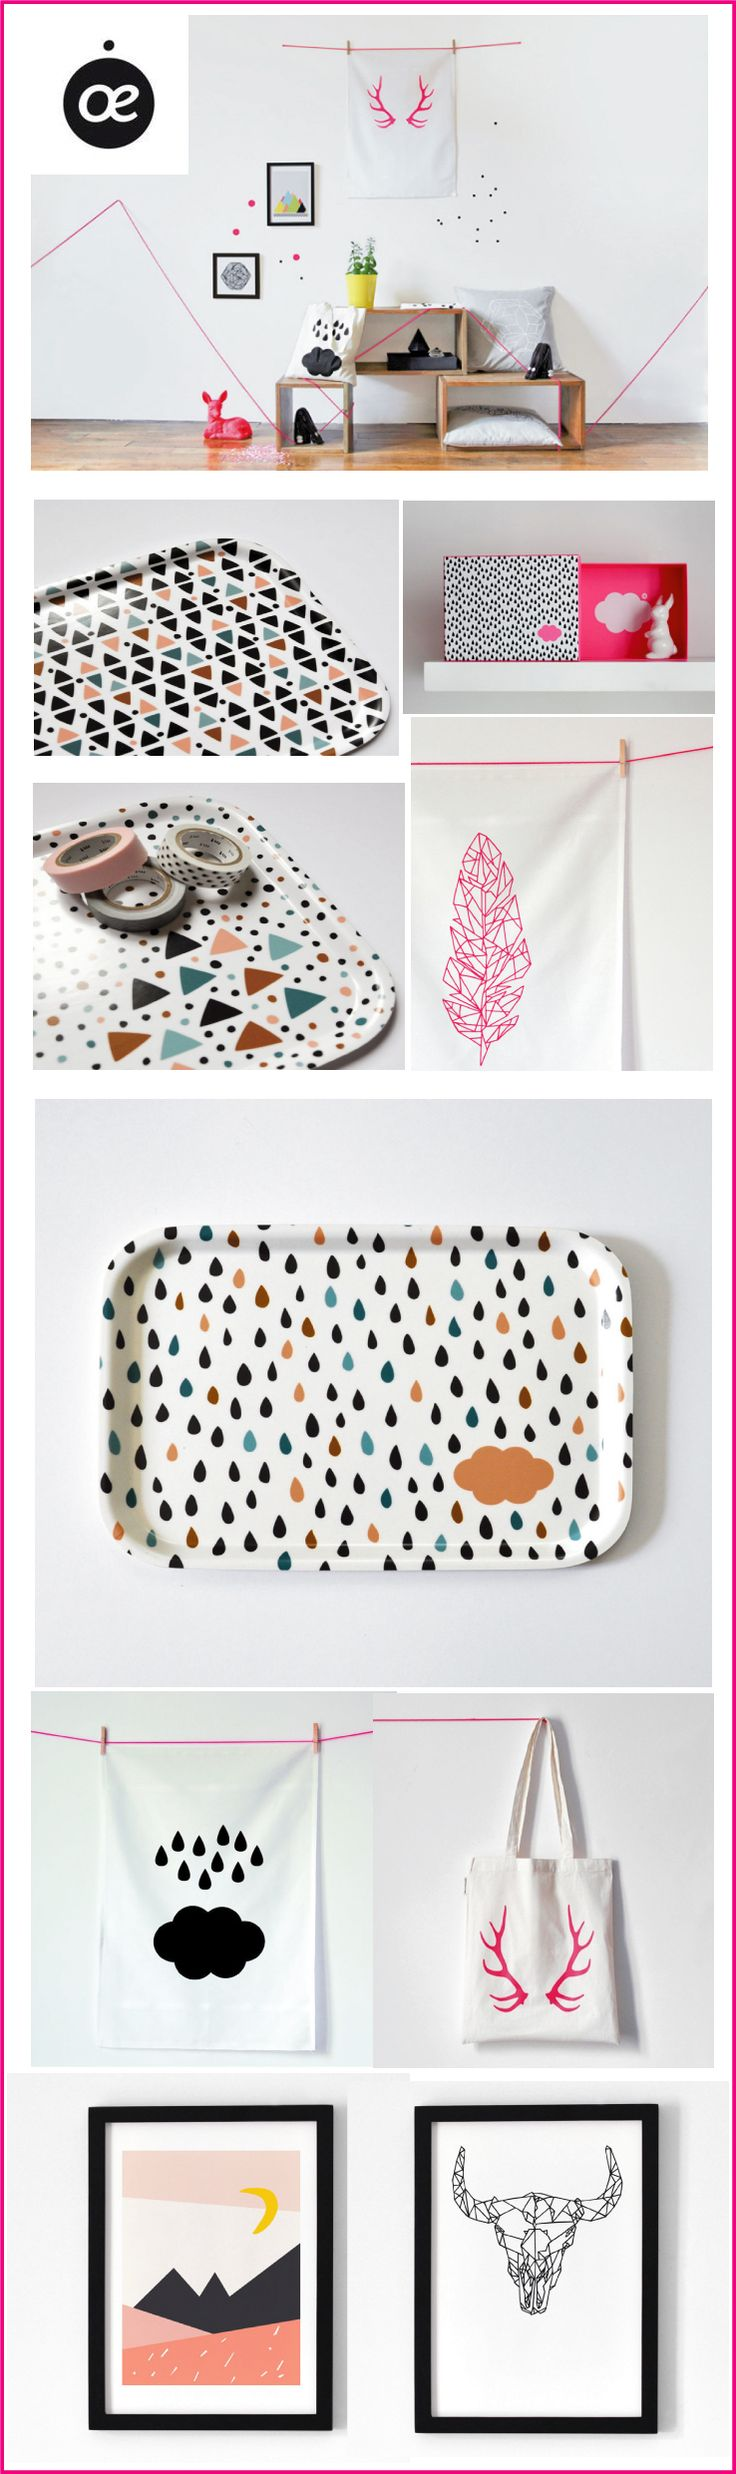 oelwein-totebags,-linge-de-maison- plateaux- affiches chiara stella home